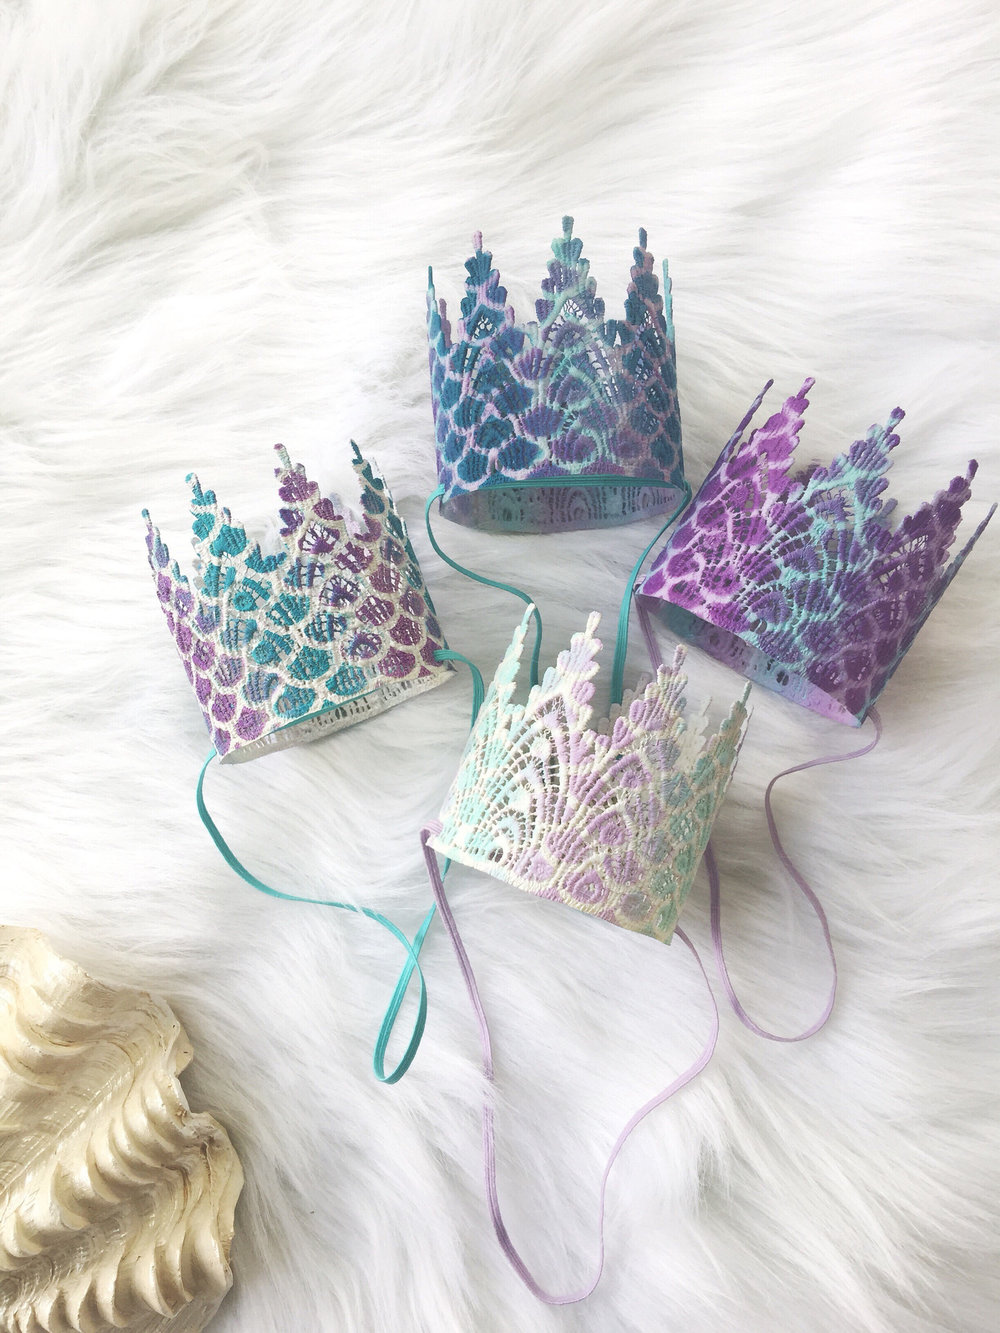 Pretty Mermaid Lace Crowns that are handcrafted and sculpted from lace